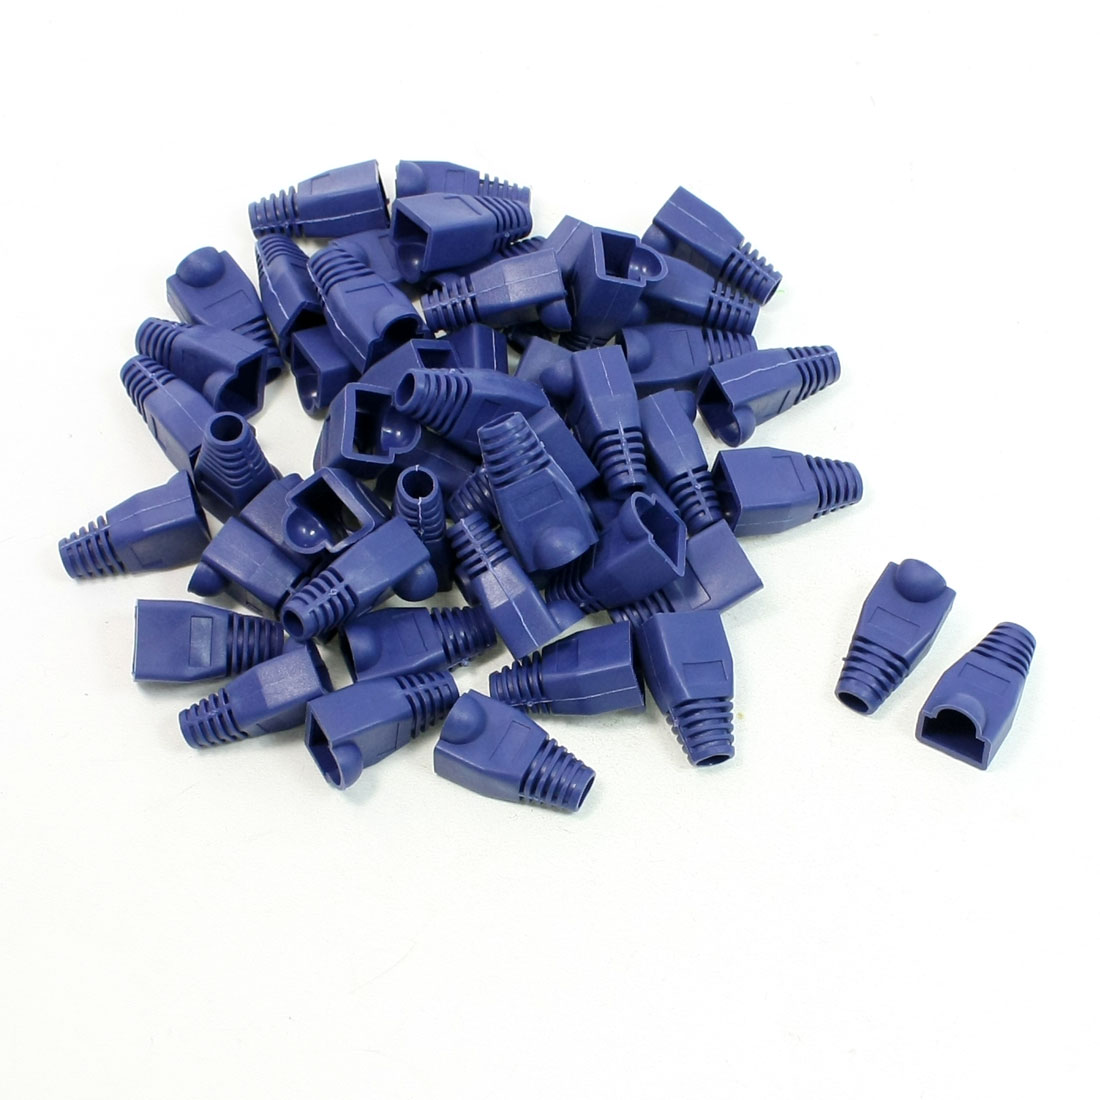 50 Pcs Anti Dust Plastic Boots Cover Cap Blue for RJ45 Connector